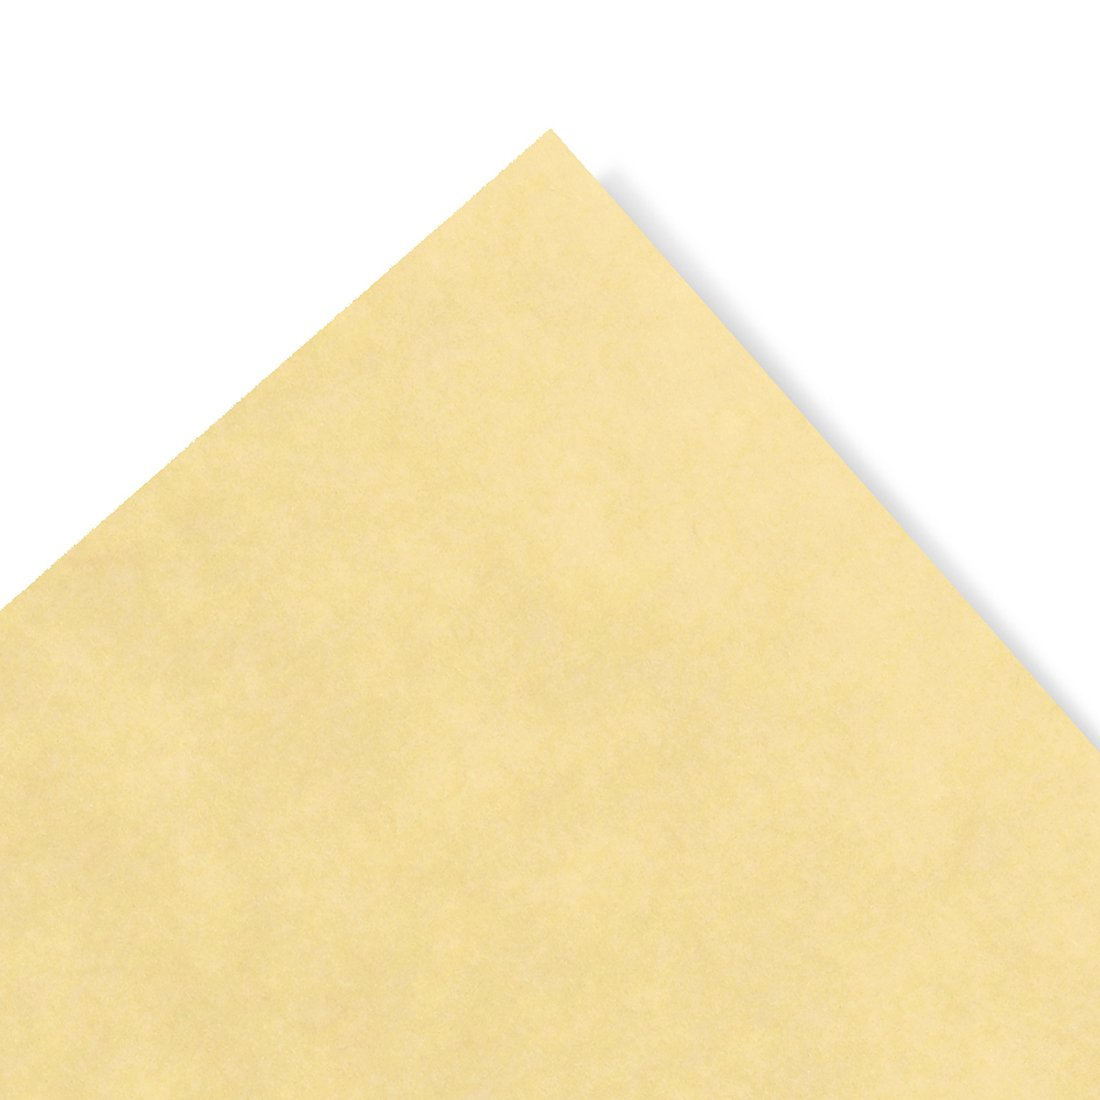 Hygloss Products Craft Parchment Paper Sheets Made in USA Natural 30 Pack Printer Friendly 8-1//2 x 11 Inches